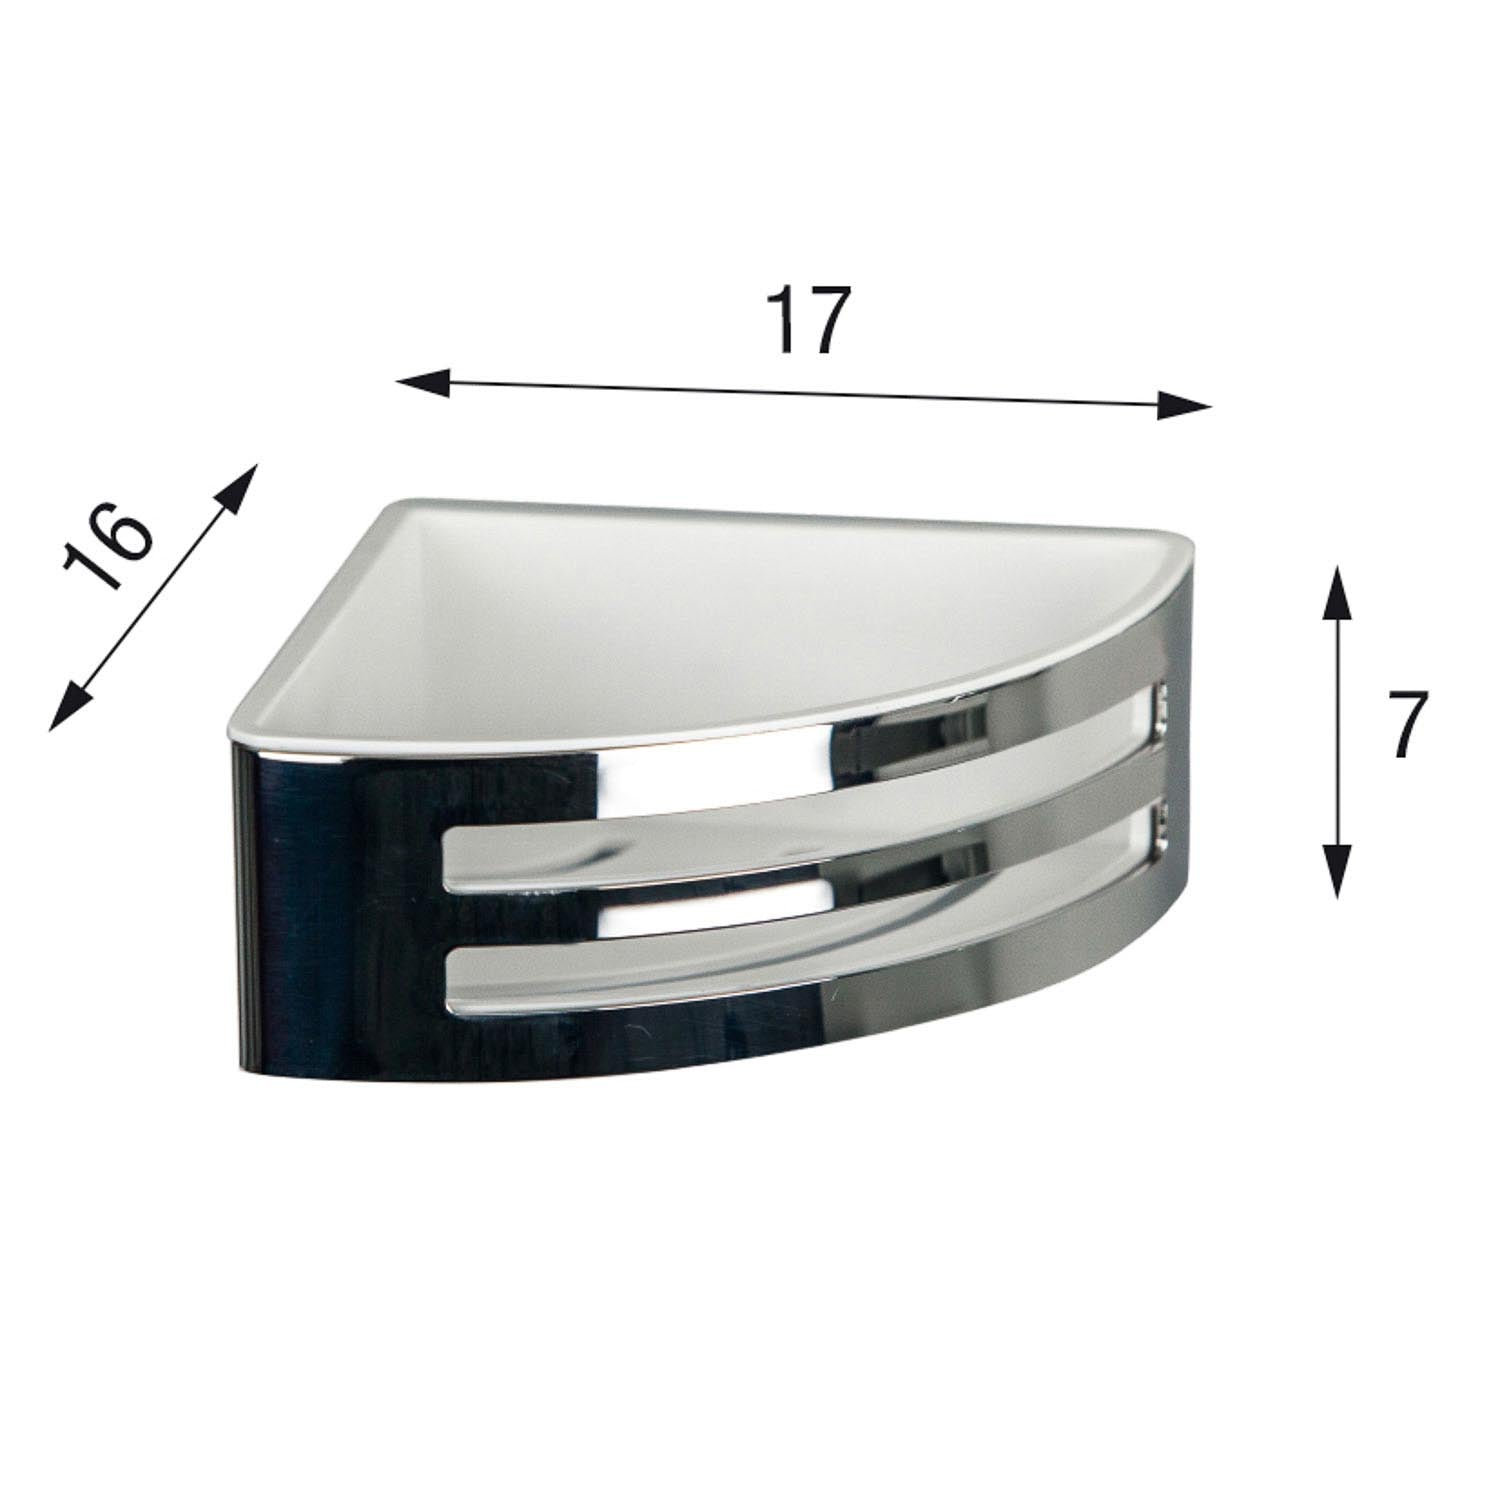 Easyclean Corner Shower Basket with a chrome finish and white removable insert dimensional drawing